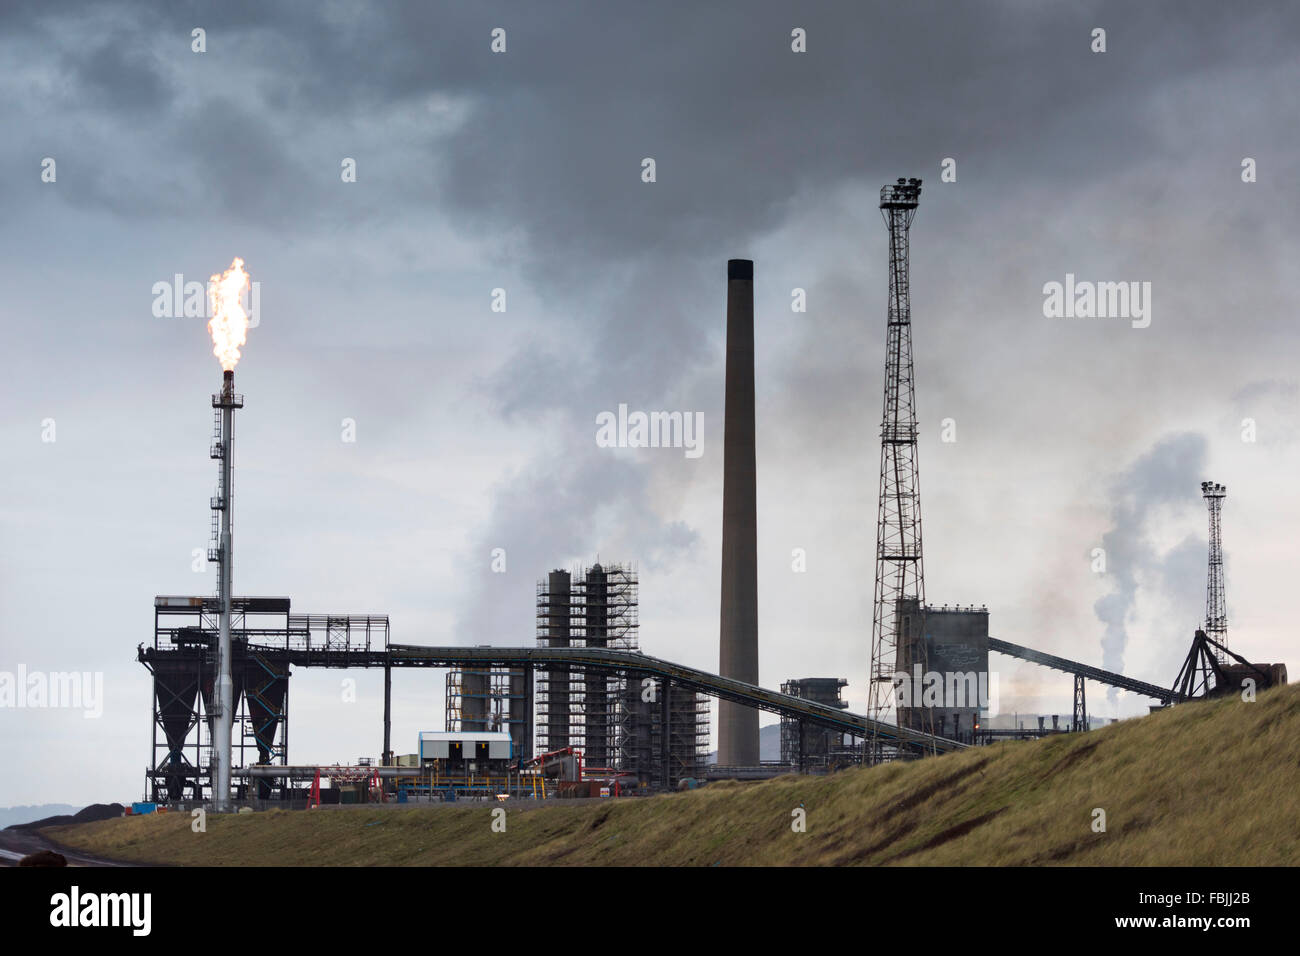 Tata Steelworks in Port Talbot, South Wales. - Stock Image